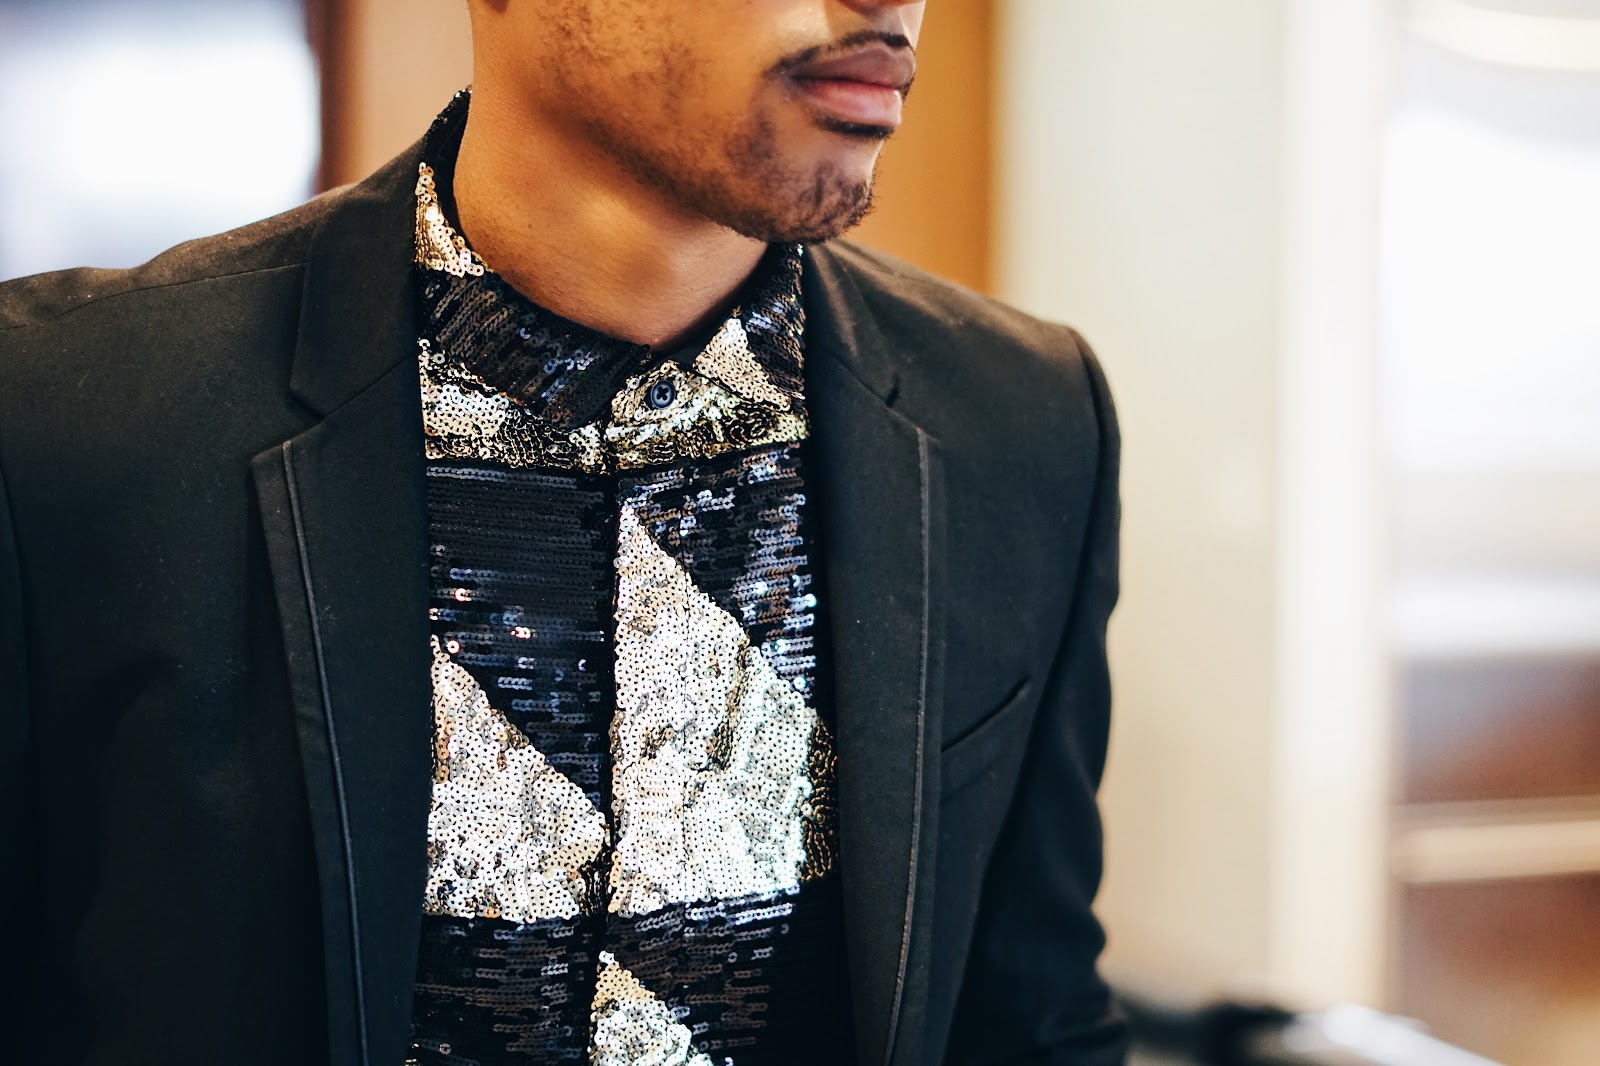 mens new years eve outfit idea new years eve style mens fashion mens wear mens style asos new years eve